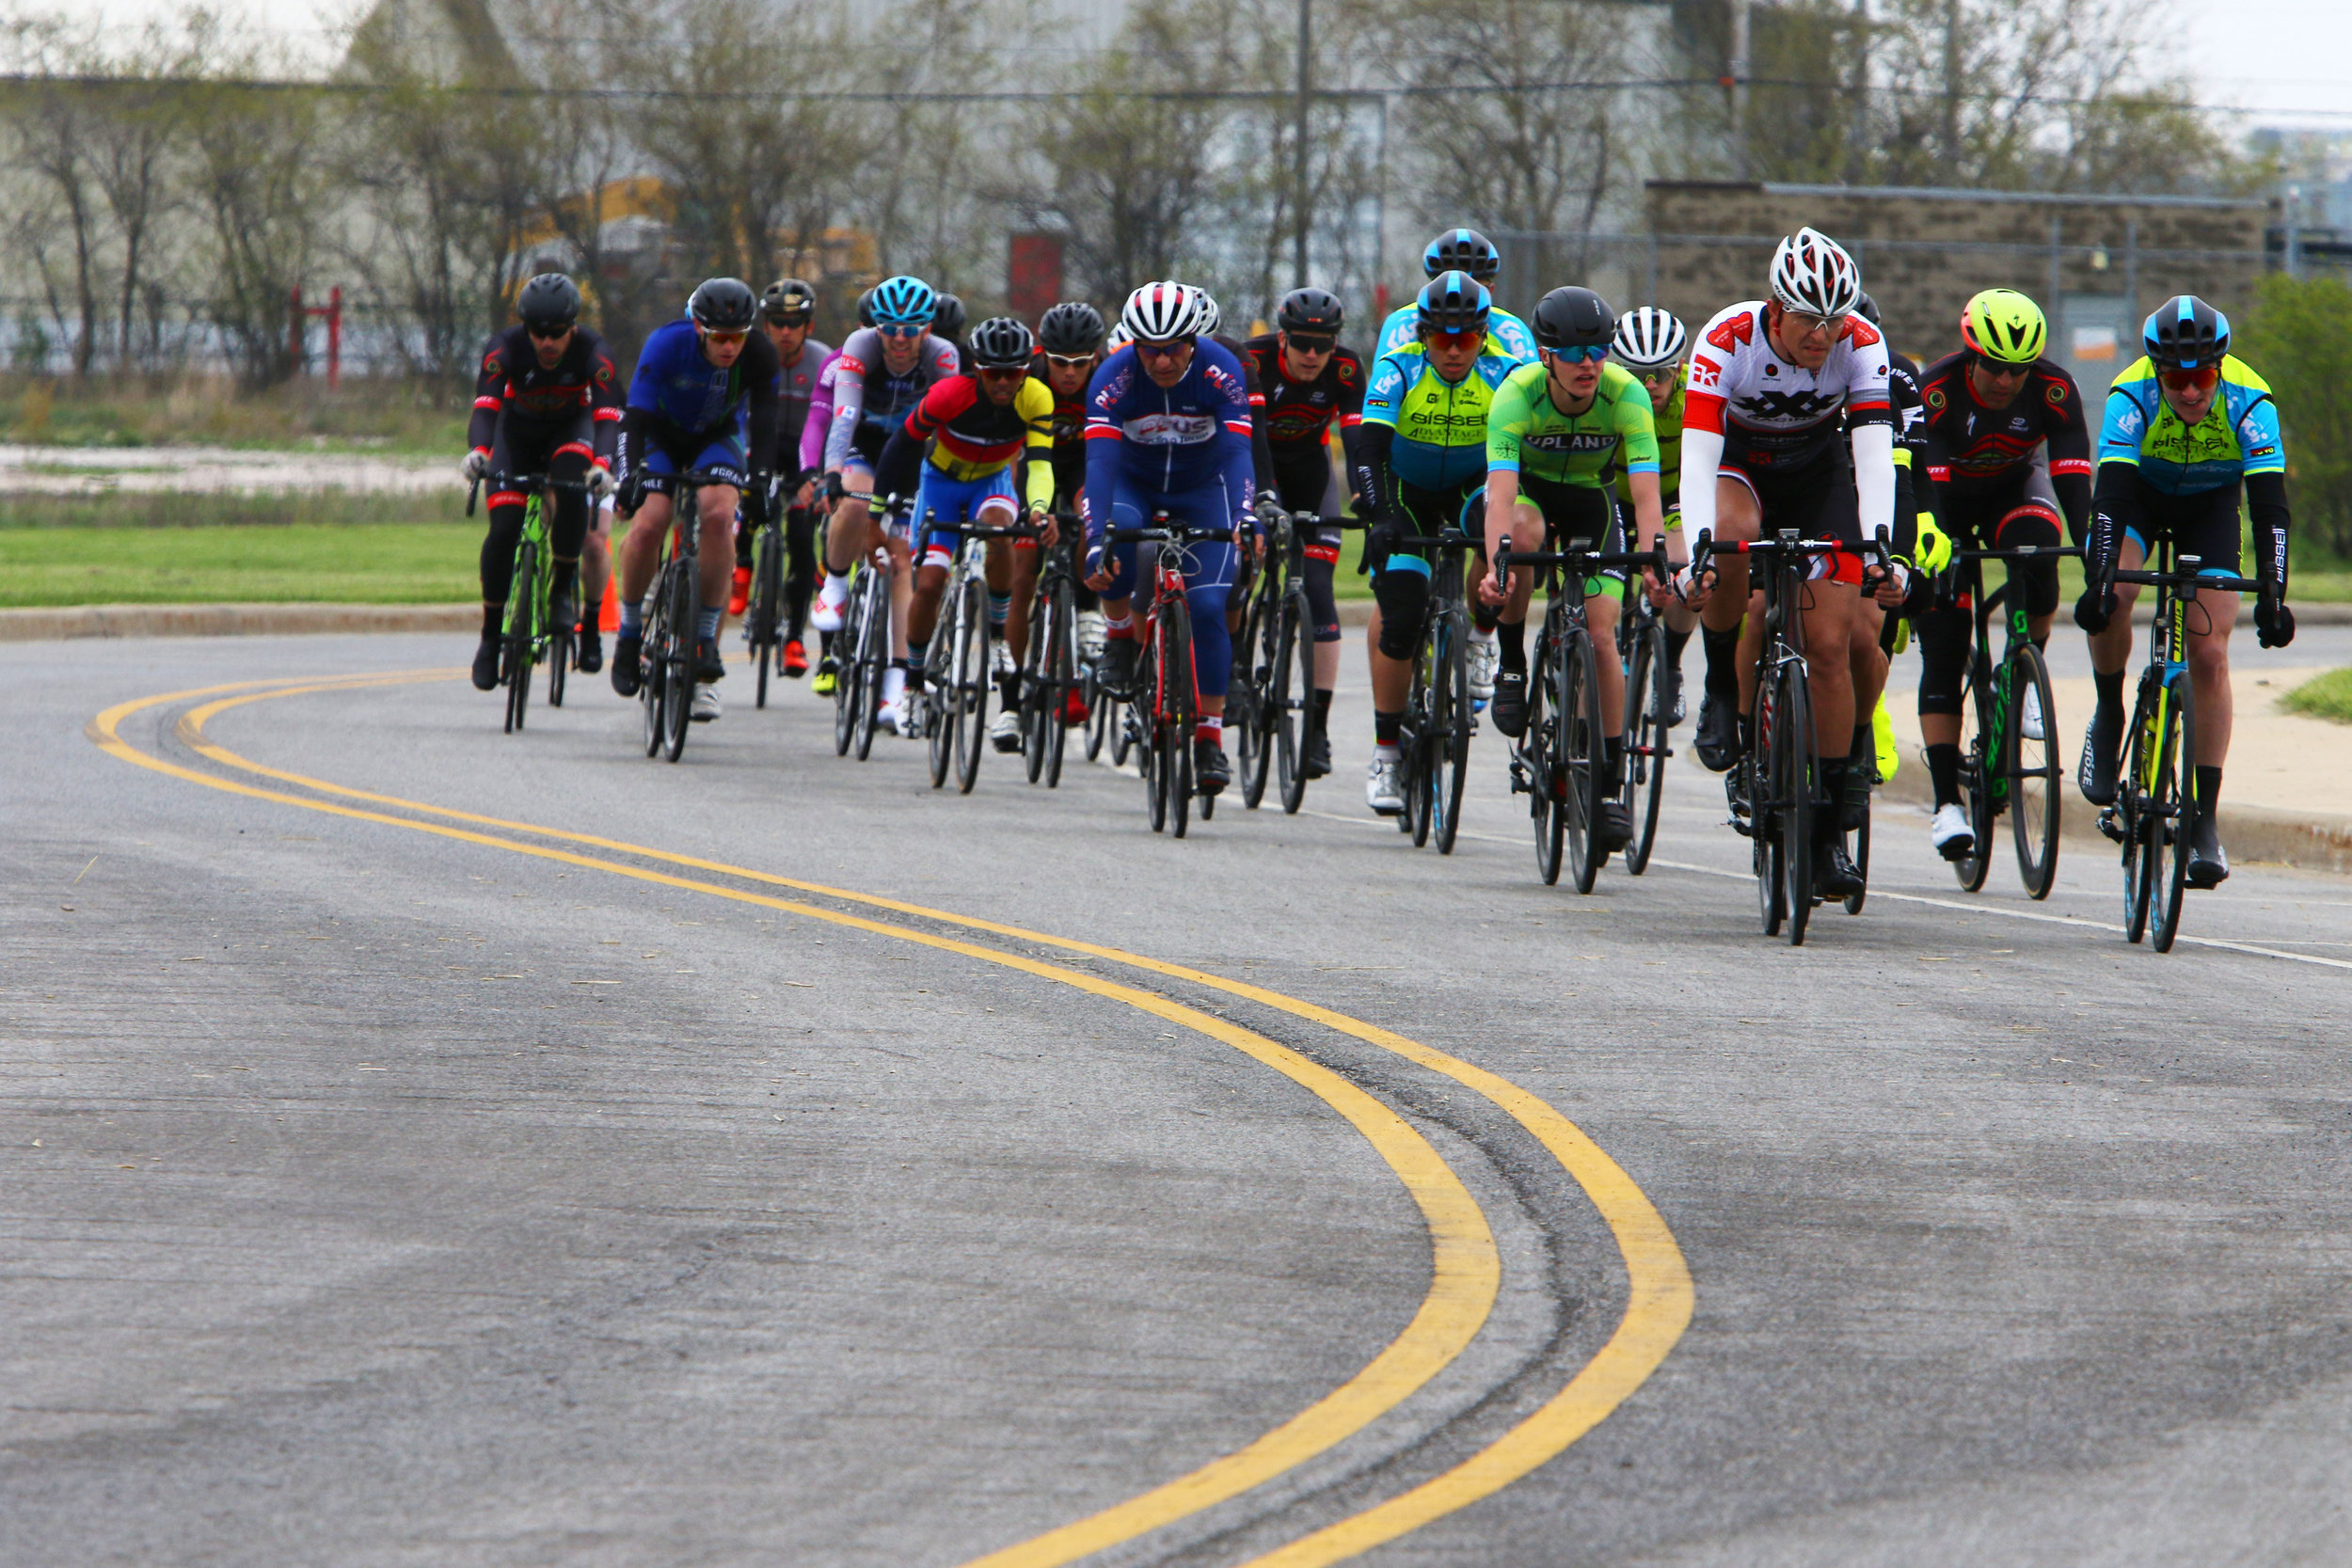 Participants in the men's pro race ride through the course at the Region Riot Criterium bike races at Wolf Lake Pavilion in Hammond.